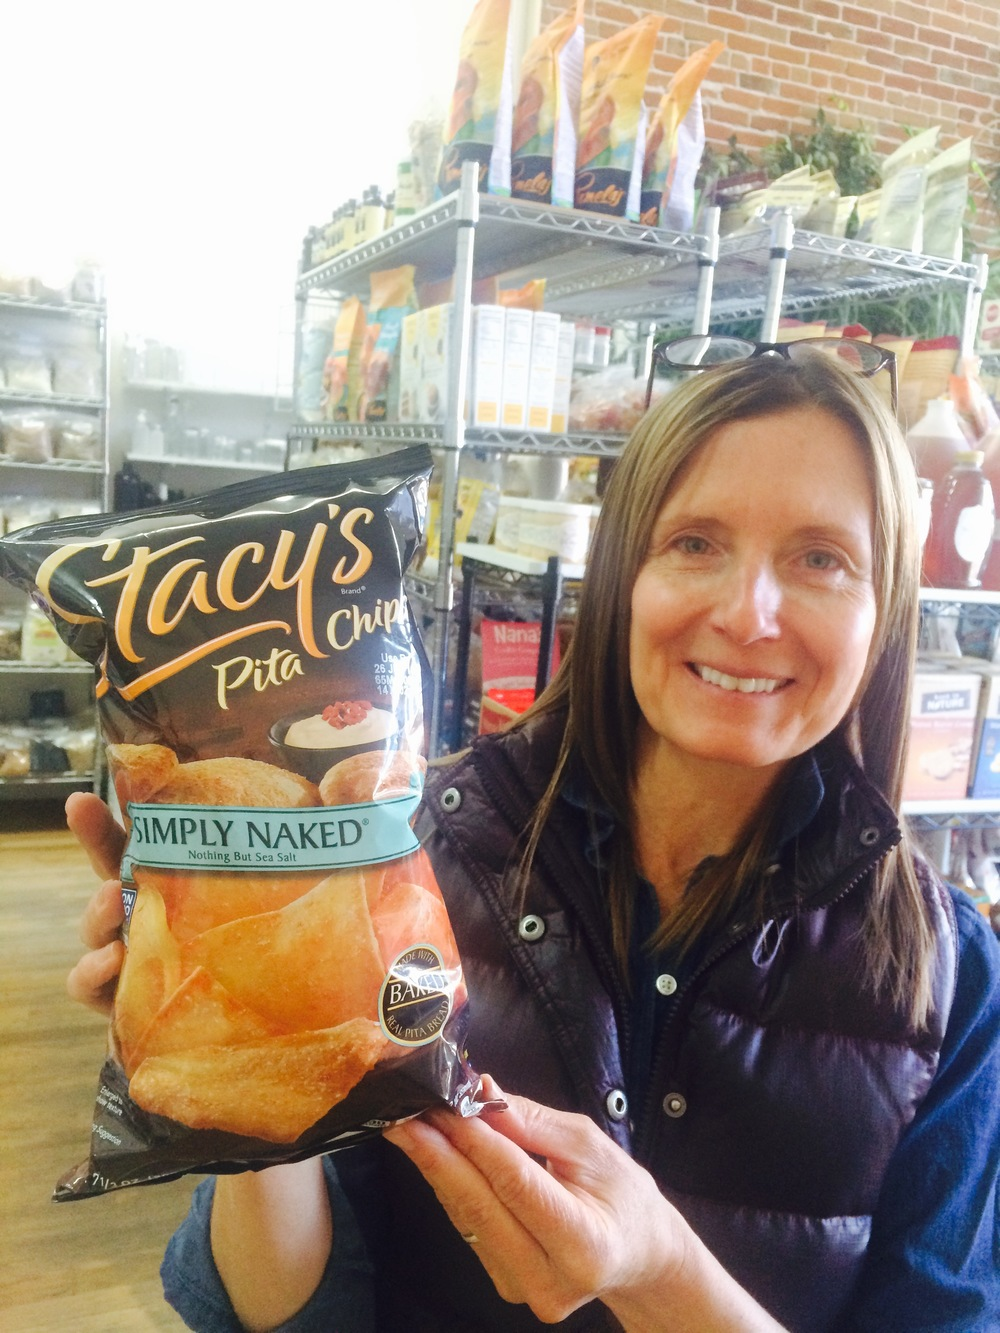 Gena Shepherd, our fearless owner, holding up our newest product, Stacy's Chips.